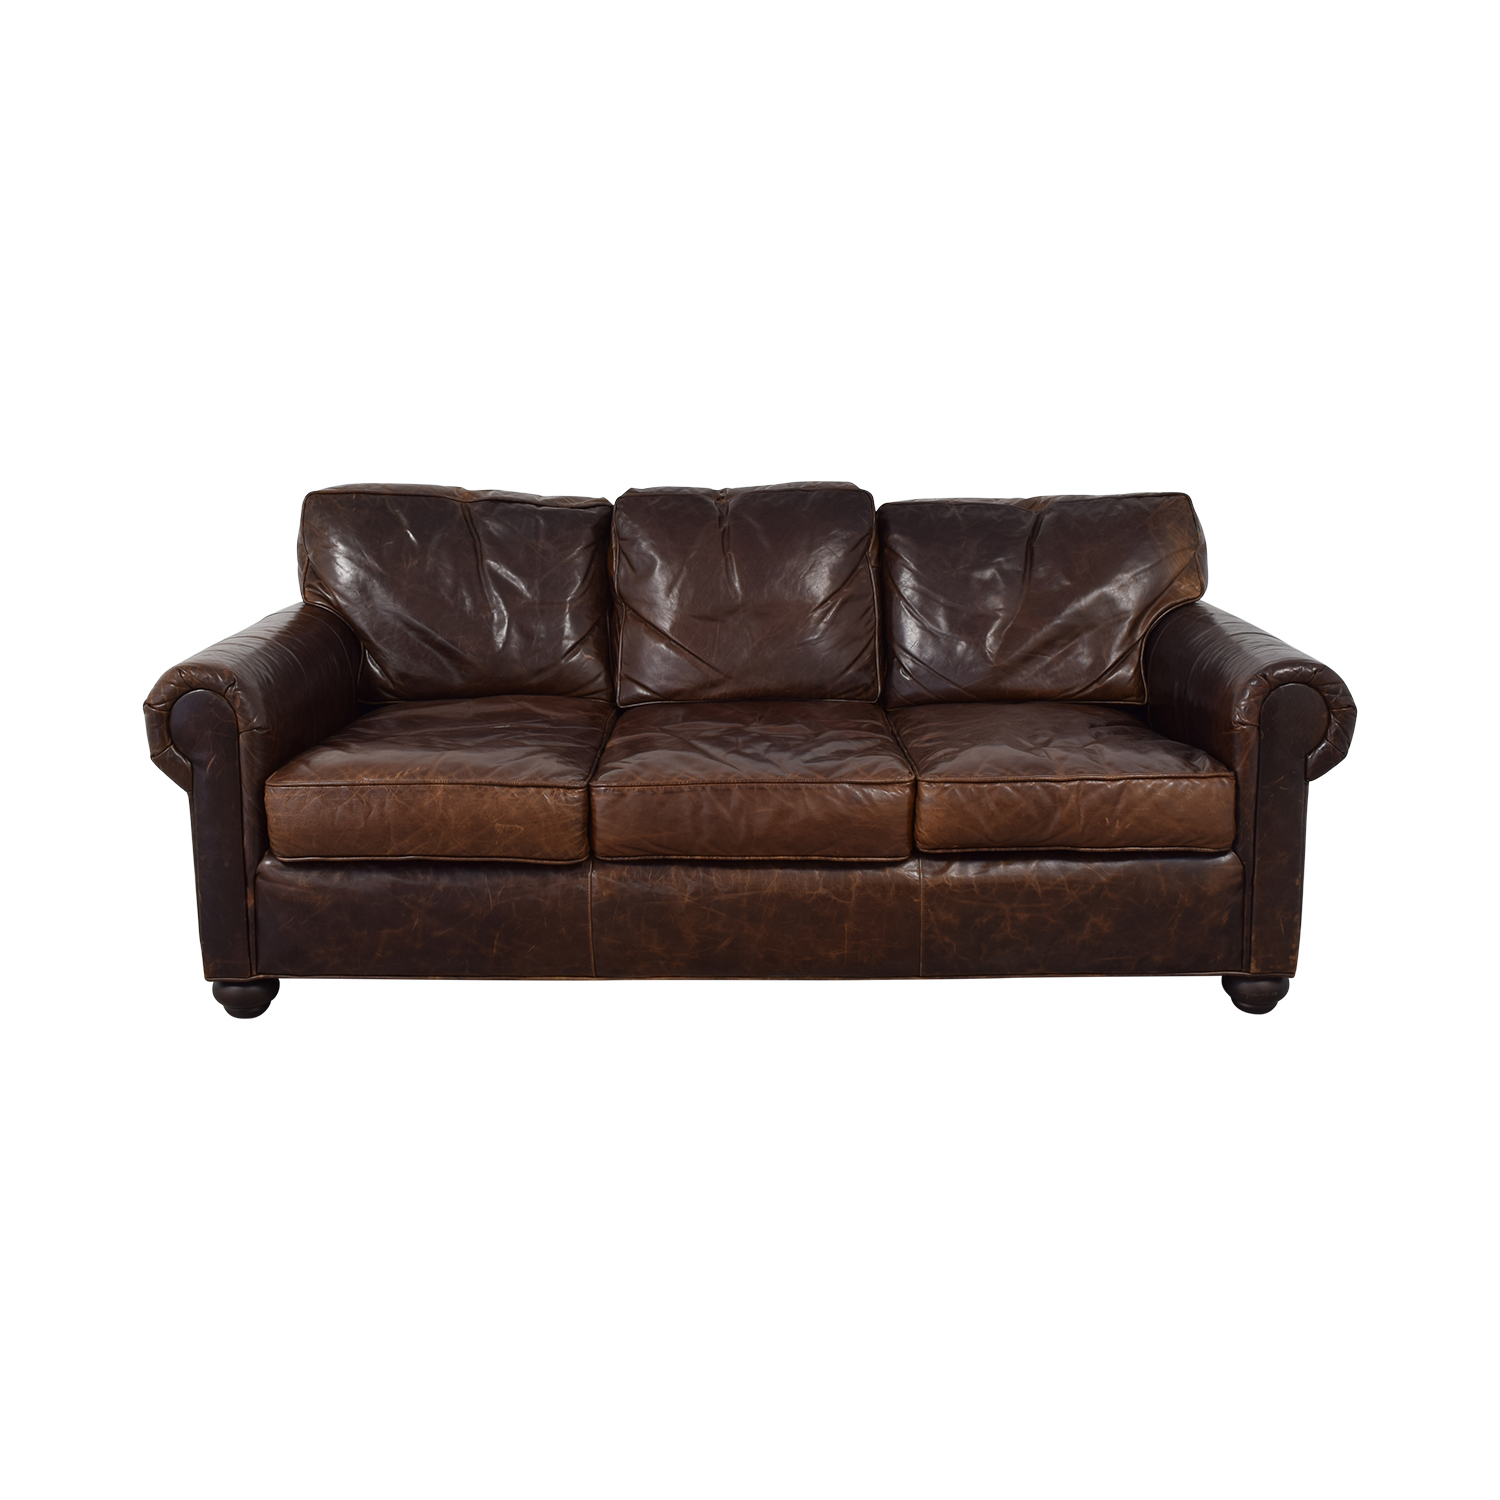 Restoration Hardware Lancaster Leather Sofa Clic Sofas